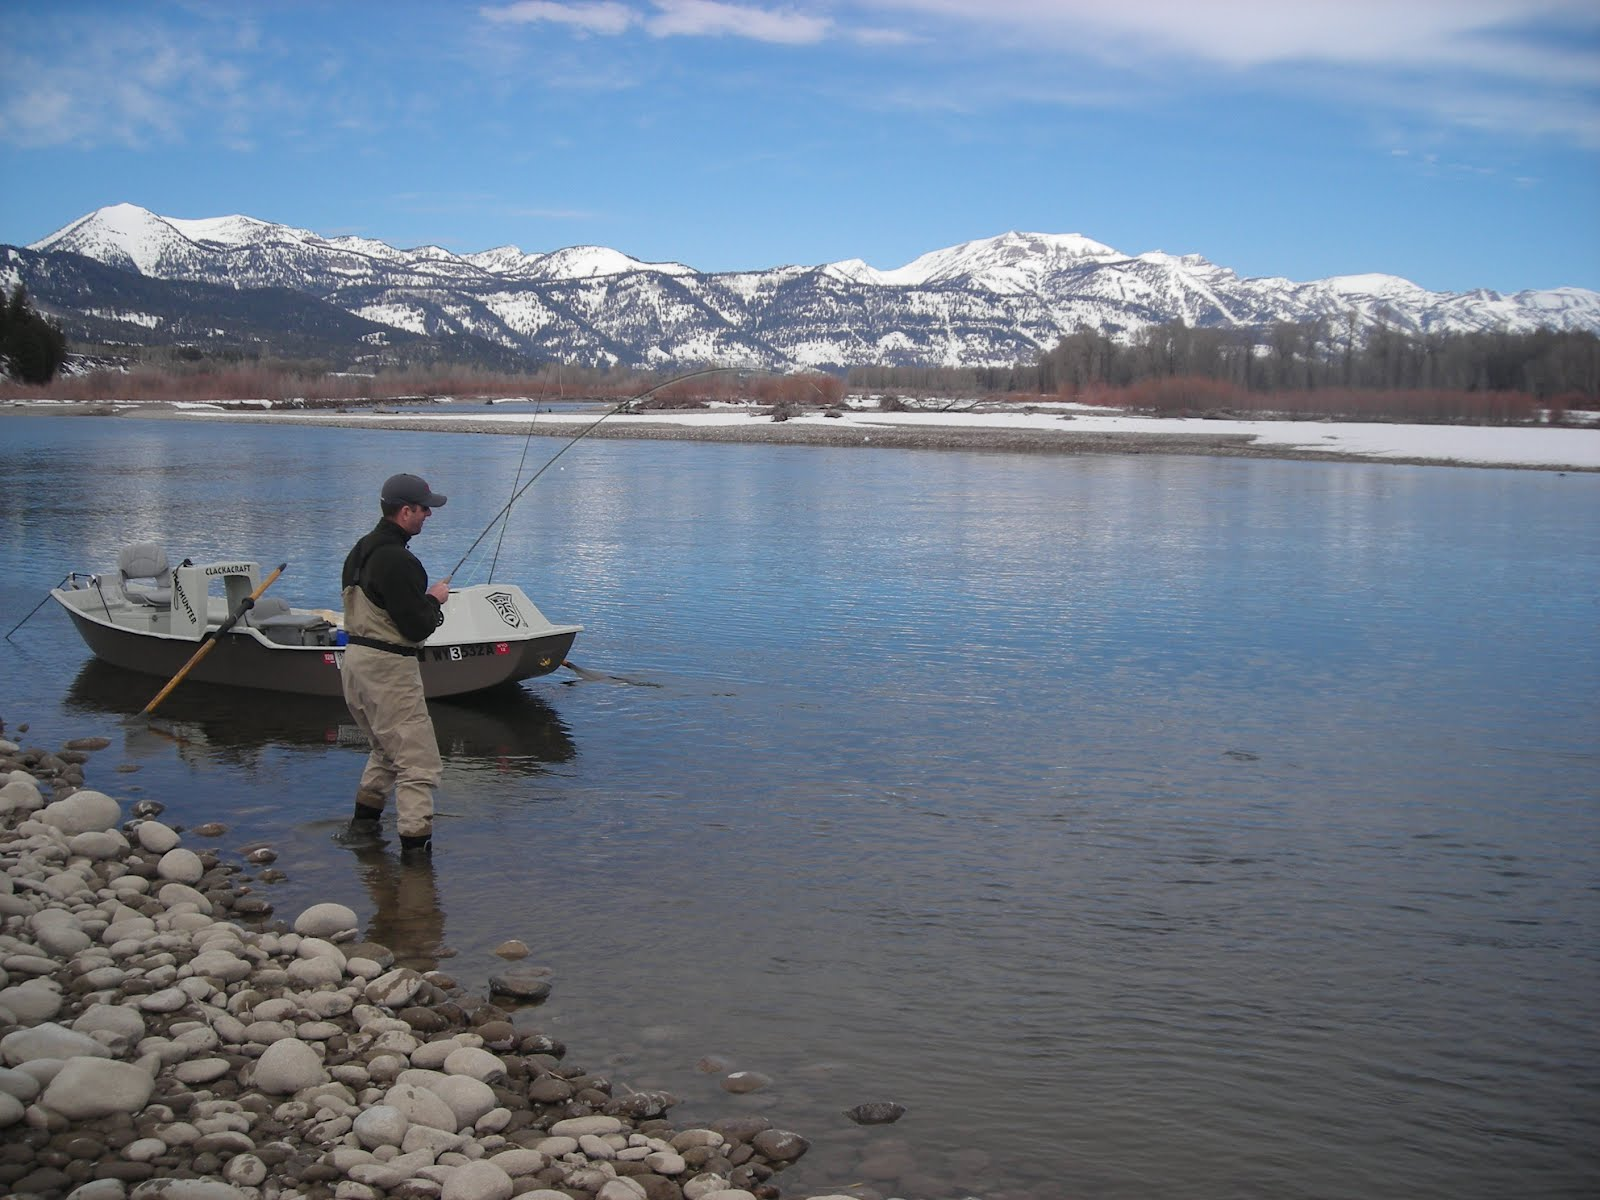 Boots snake river angler fly fishing report for april 1st for South fork snake river fishing report